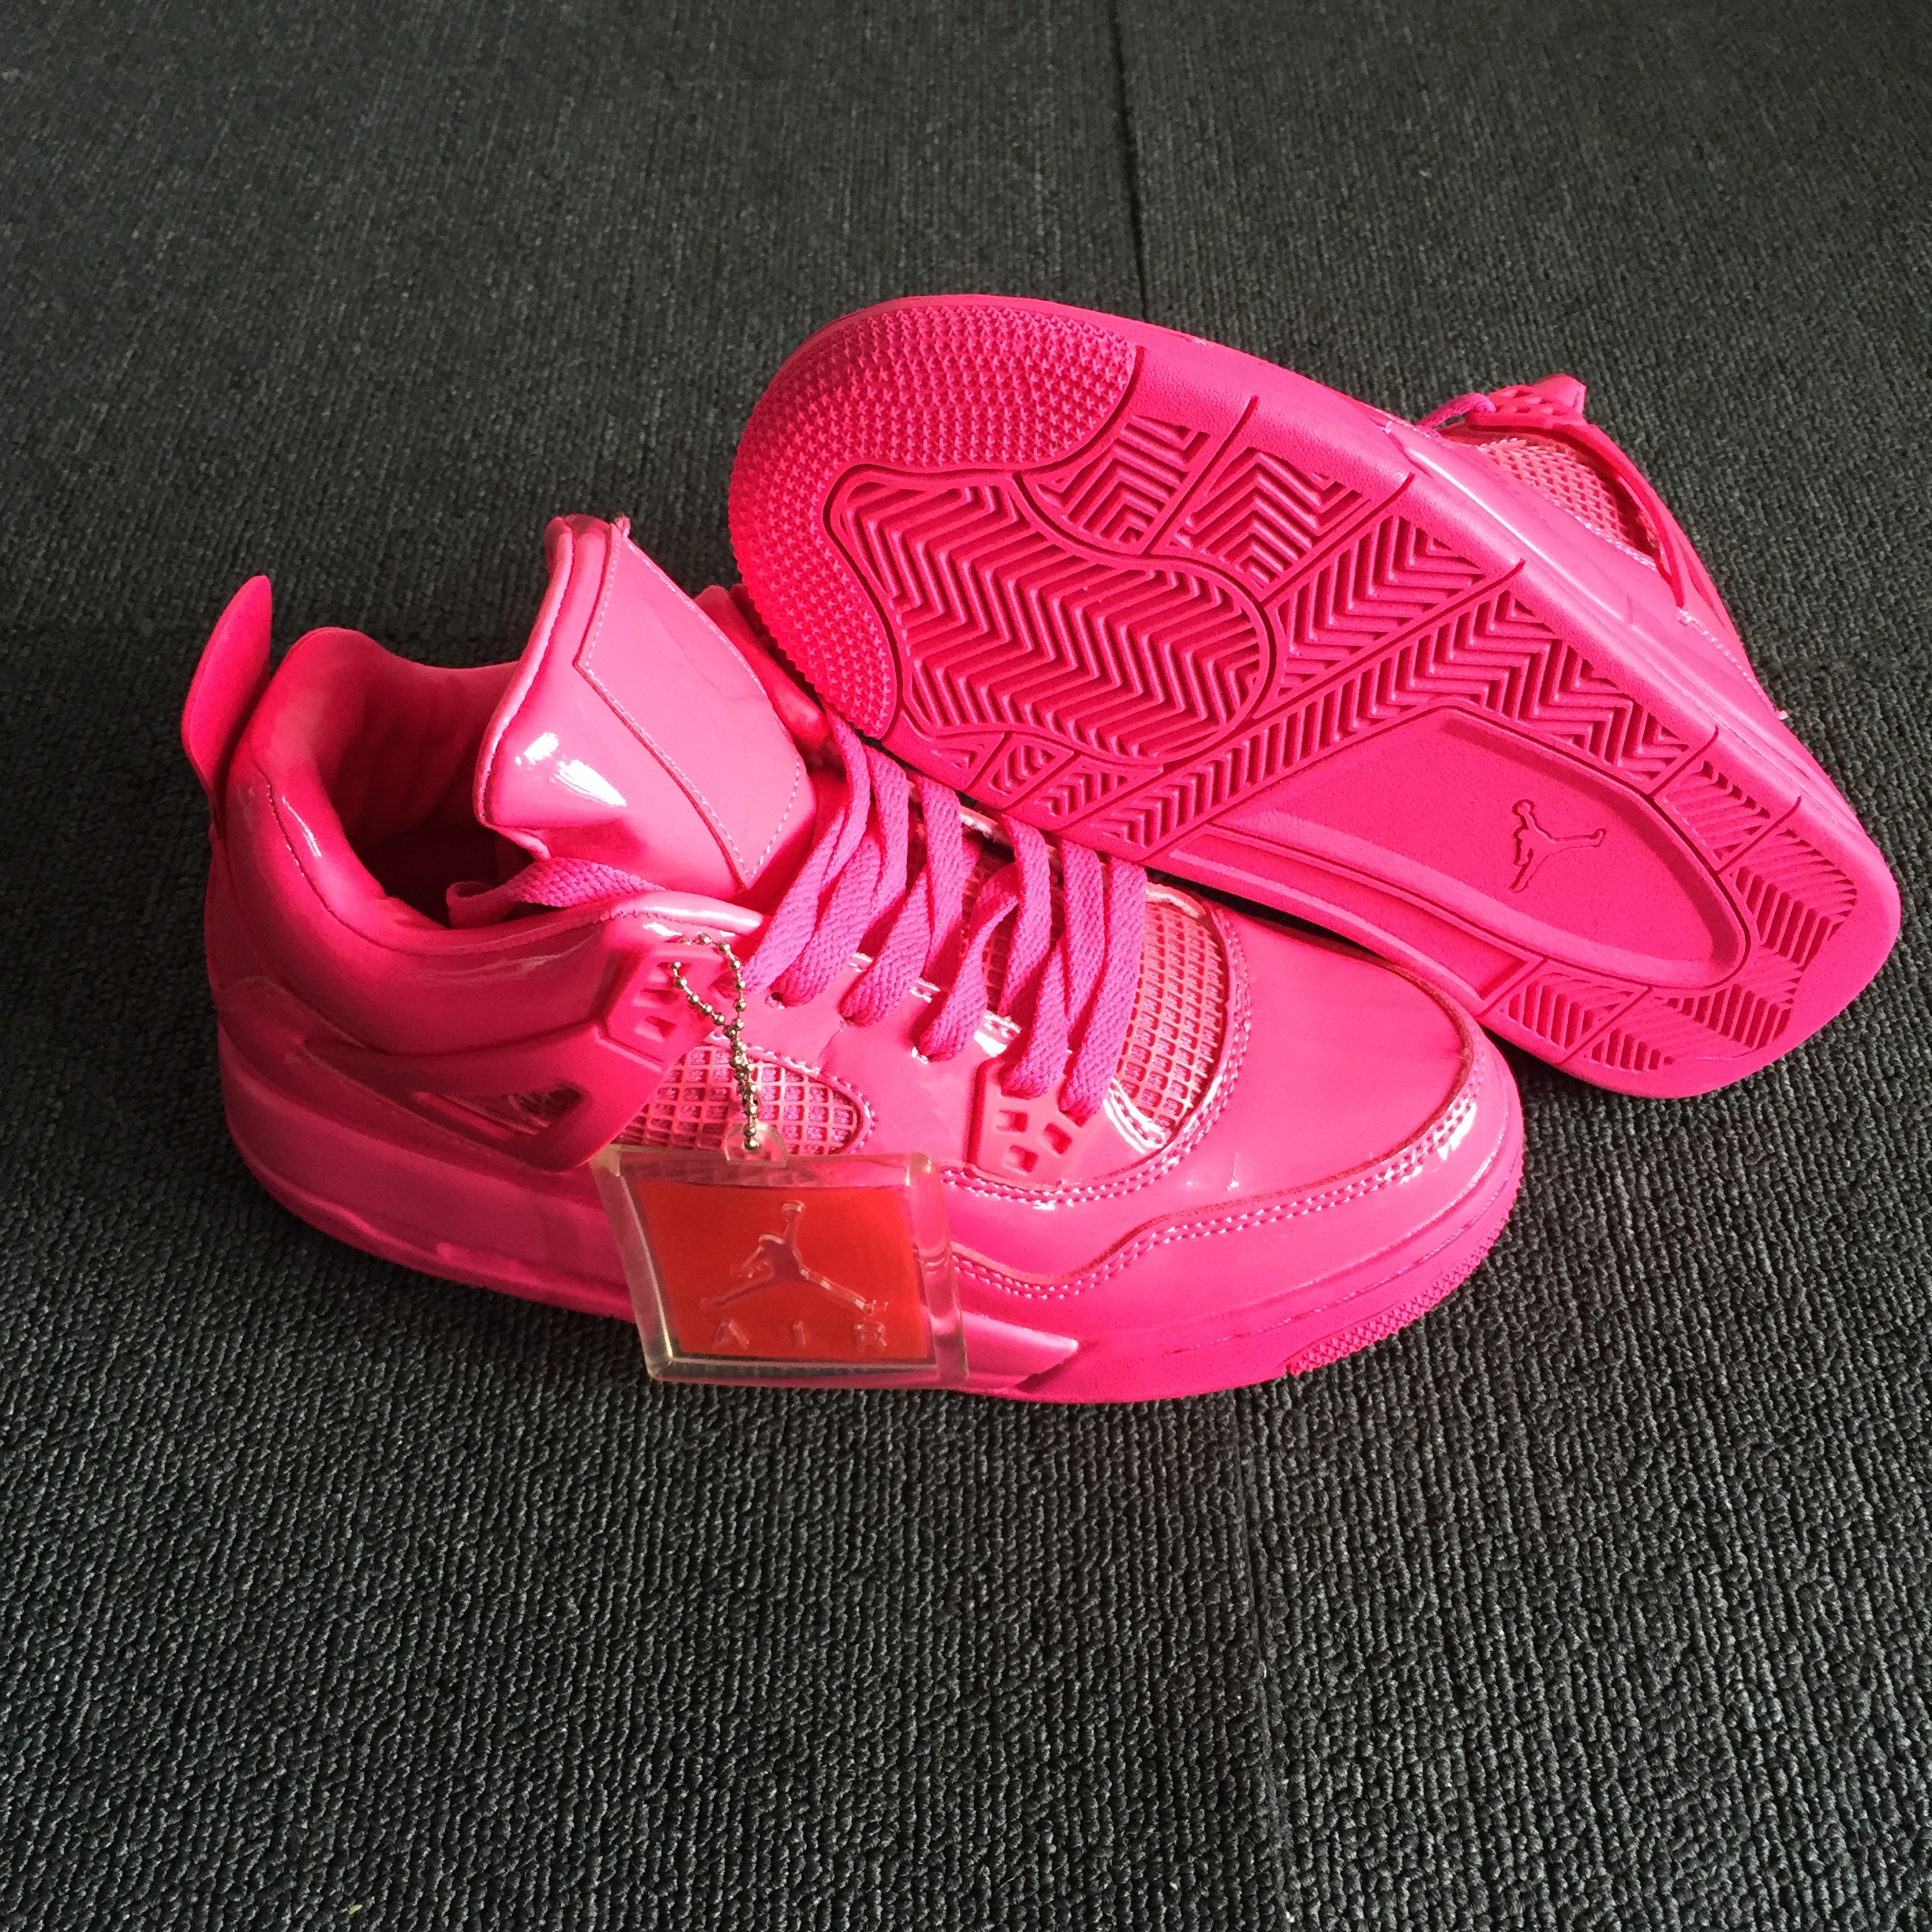 Women Air Jordan 4 Valentine's Day Red Shoes